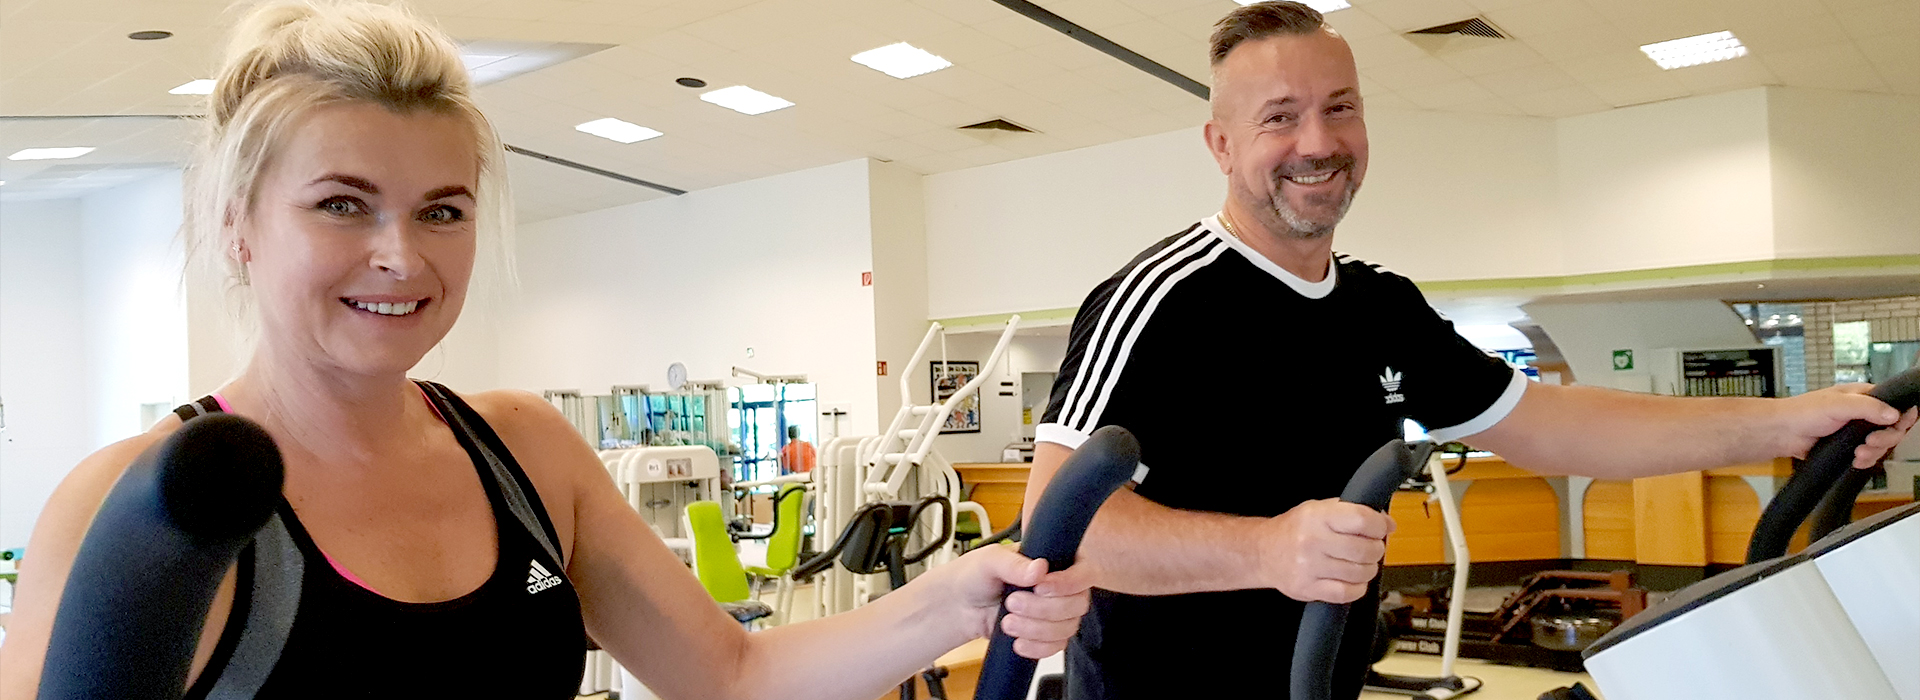 <small>Gemeinsam Fit werden</small>VGS FITCLUB